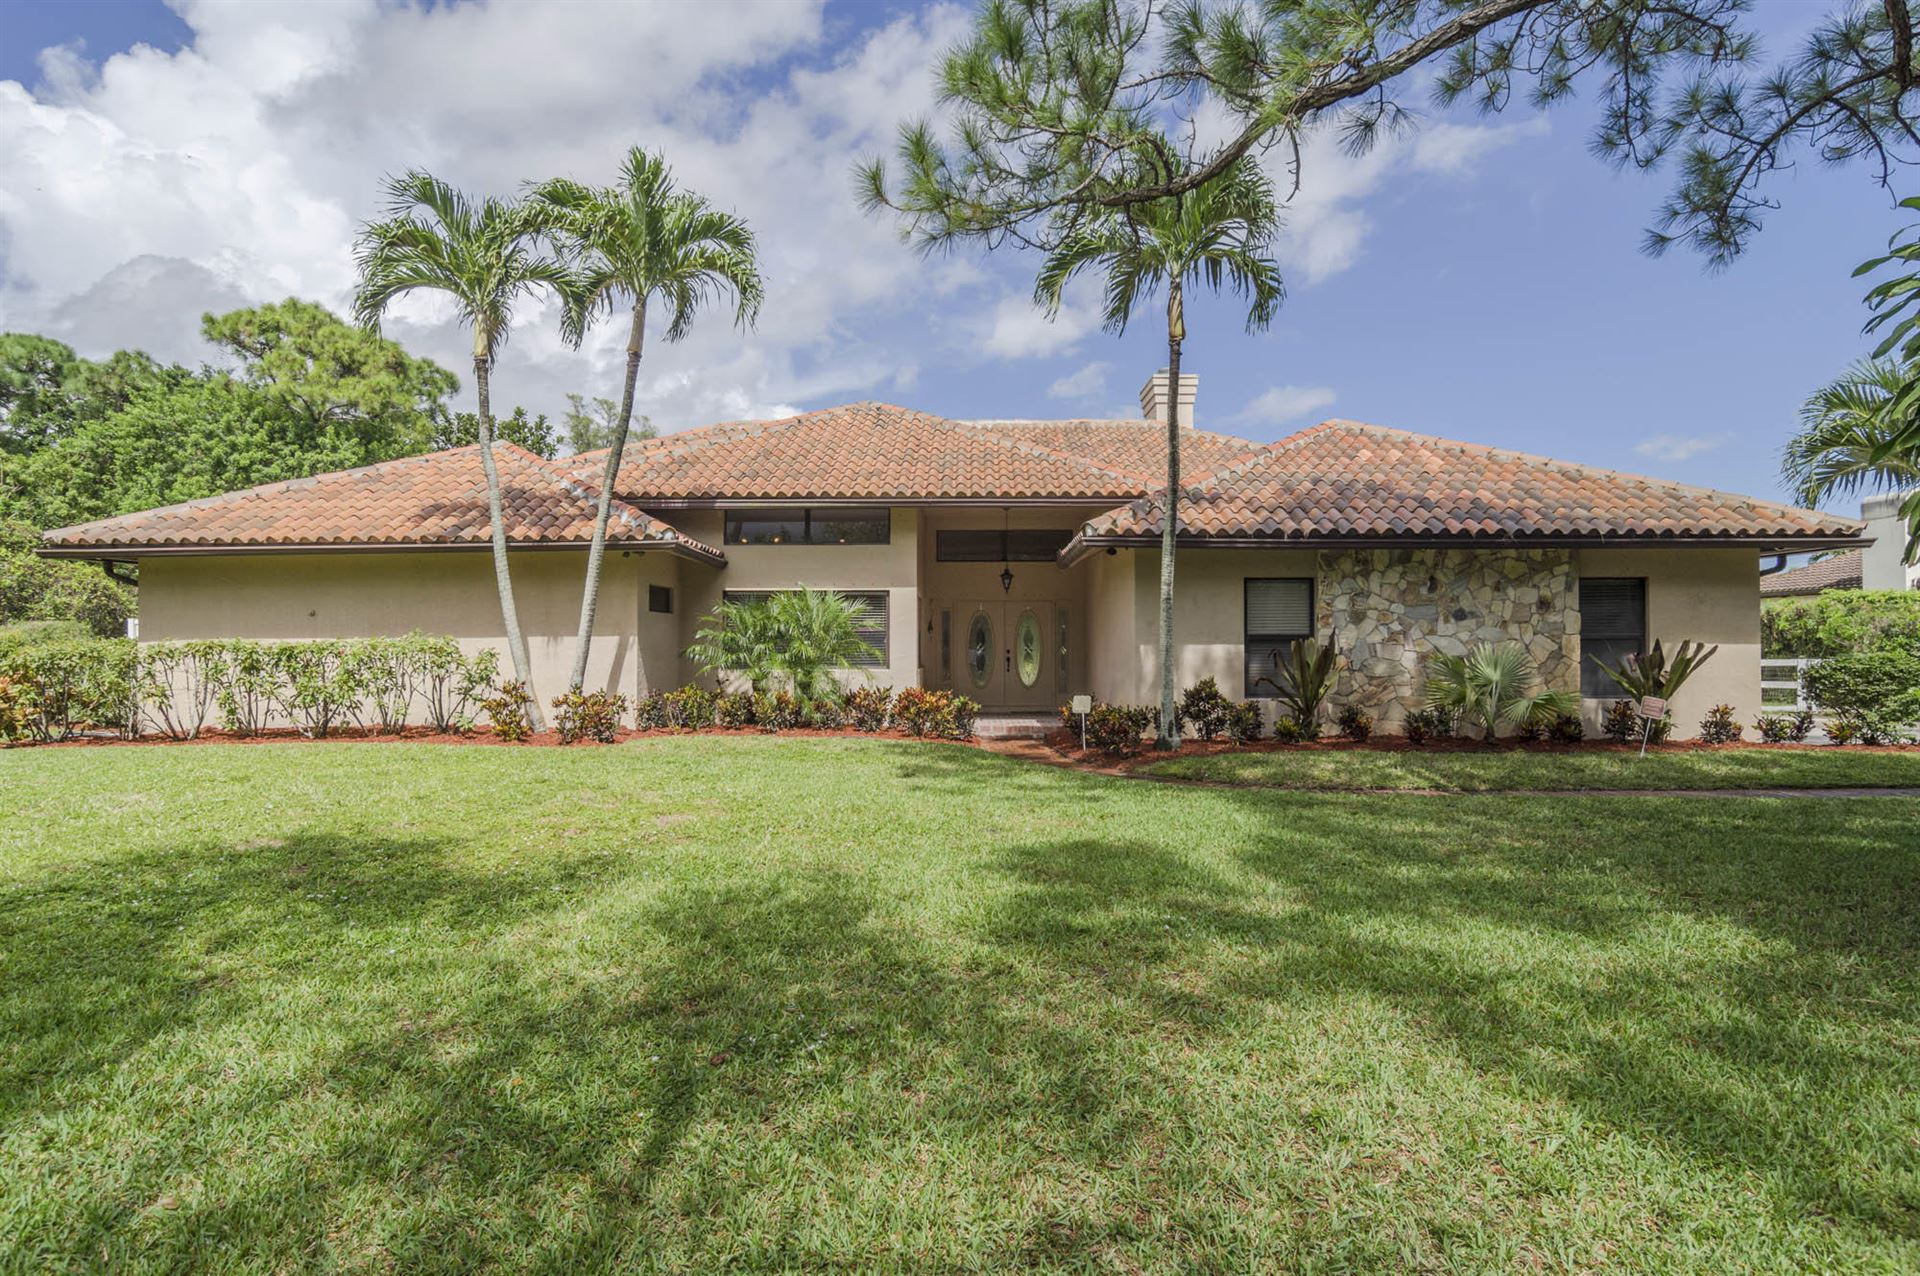 Photo of 5701 Sea Biscuit Road, Palm Beach Gardens, FL 33418 (MLS # RX-10660304)